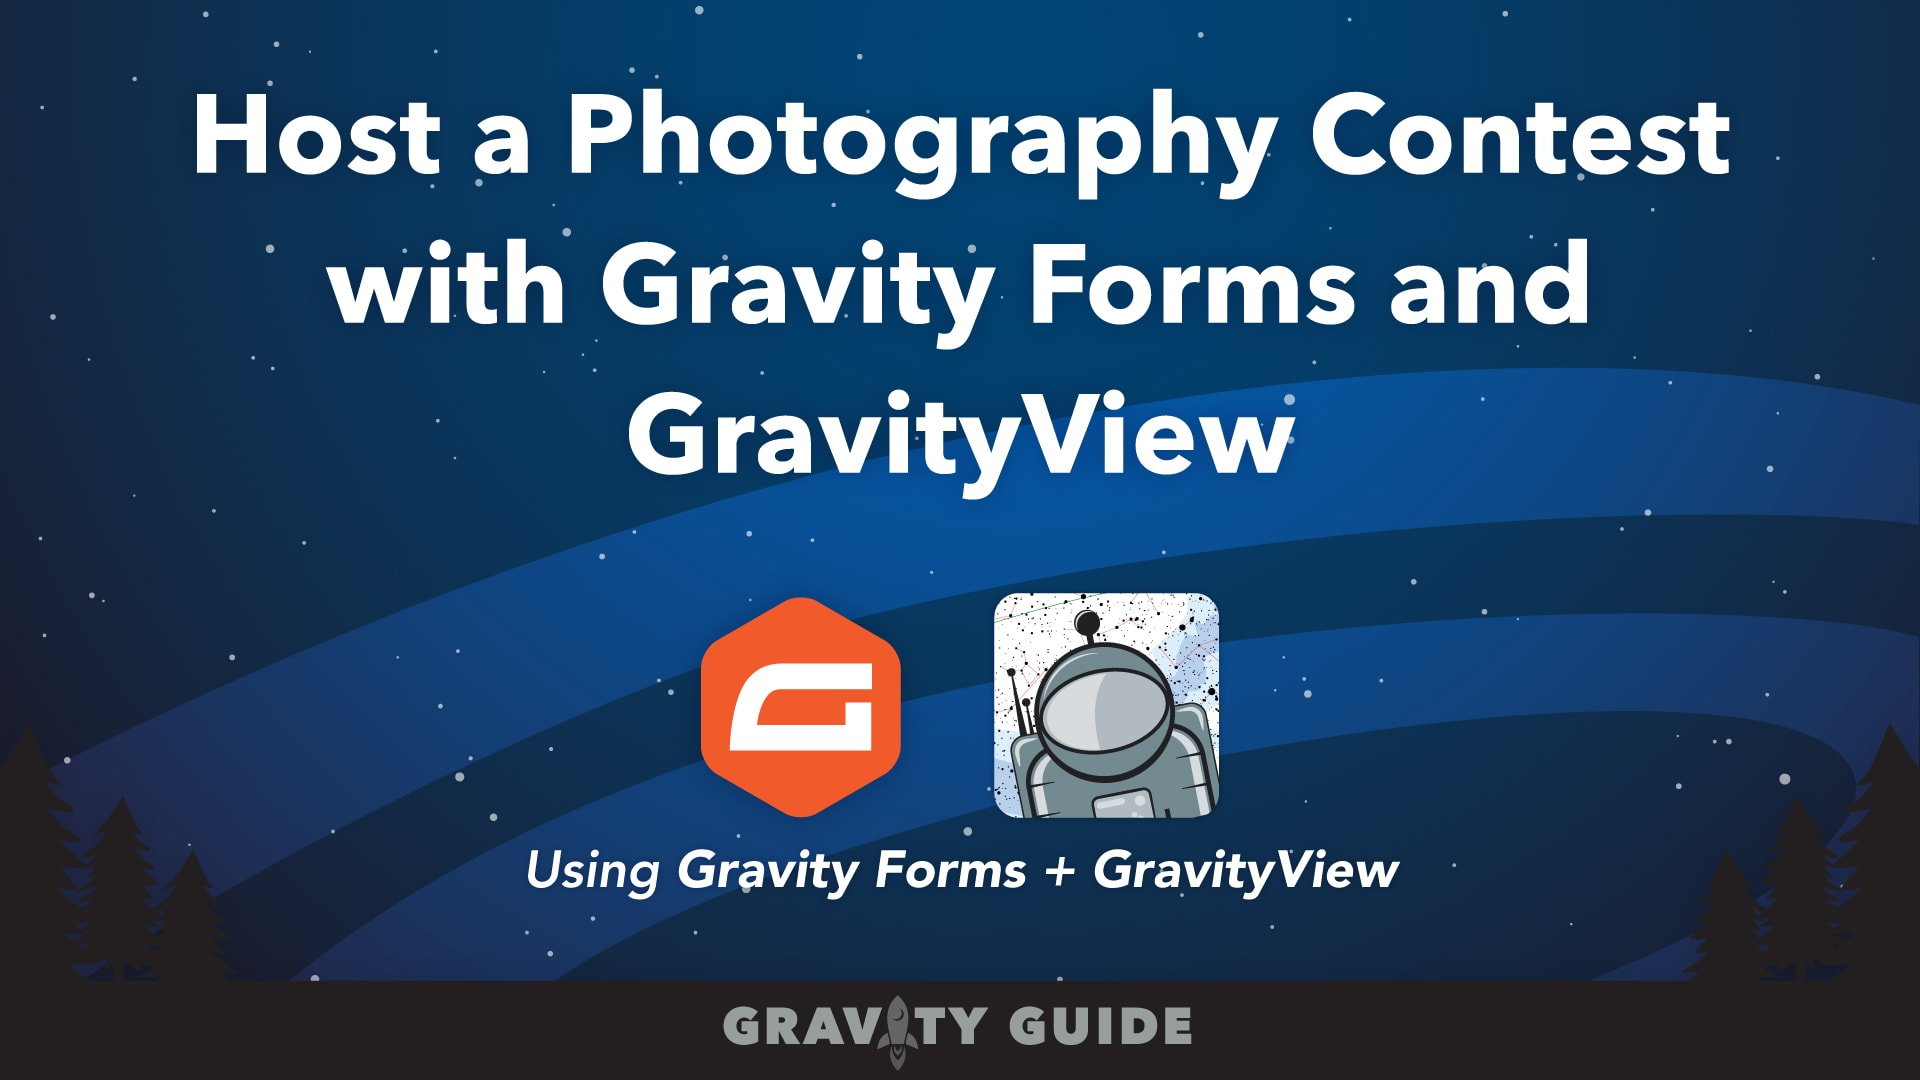 Host a Photography Contest with Gravity Forms and GravityView